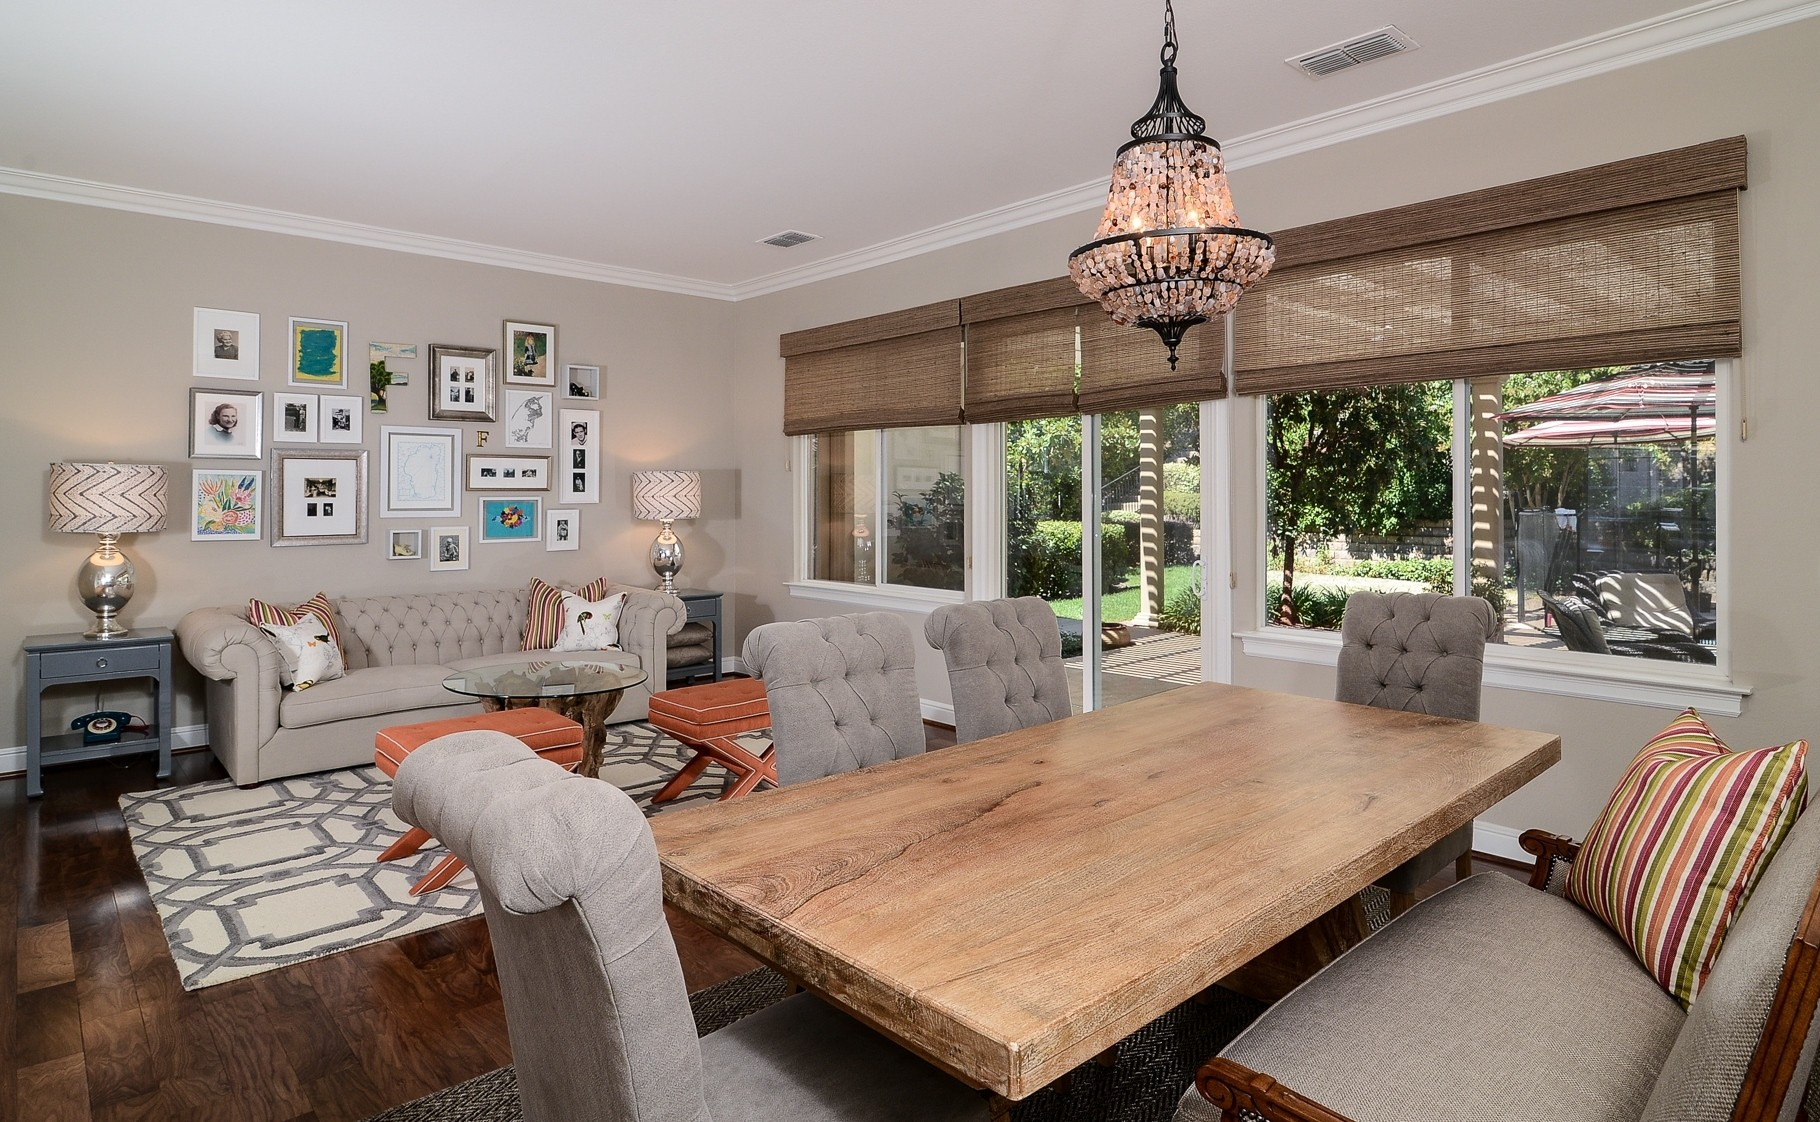 How To Furnish A Vacation Rental Home